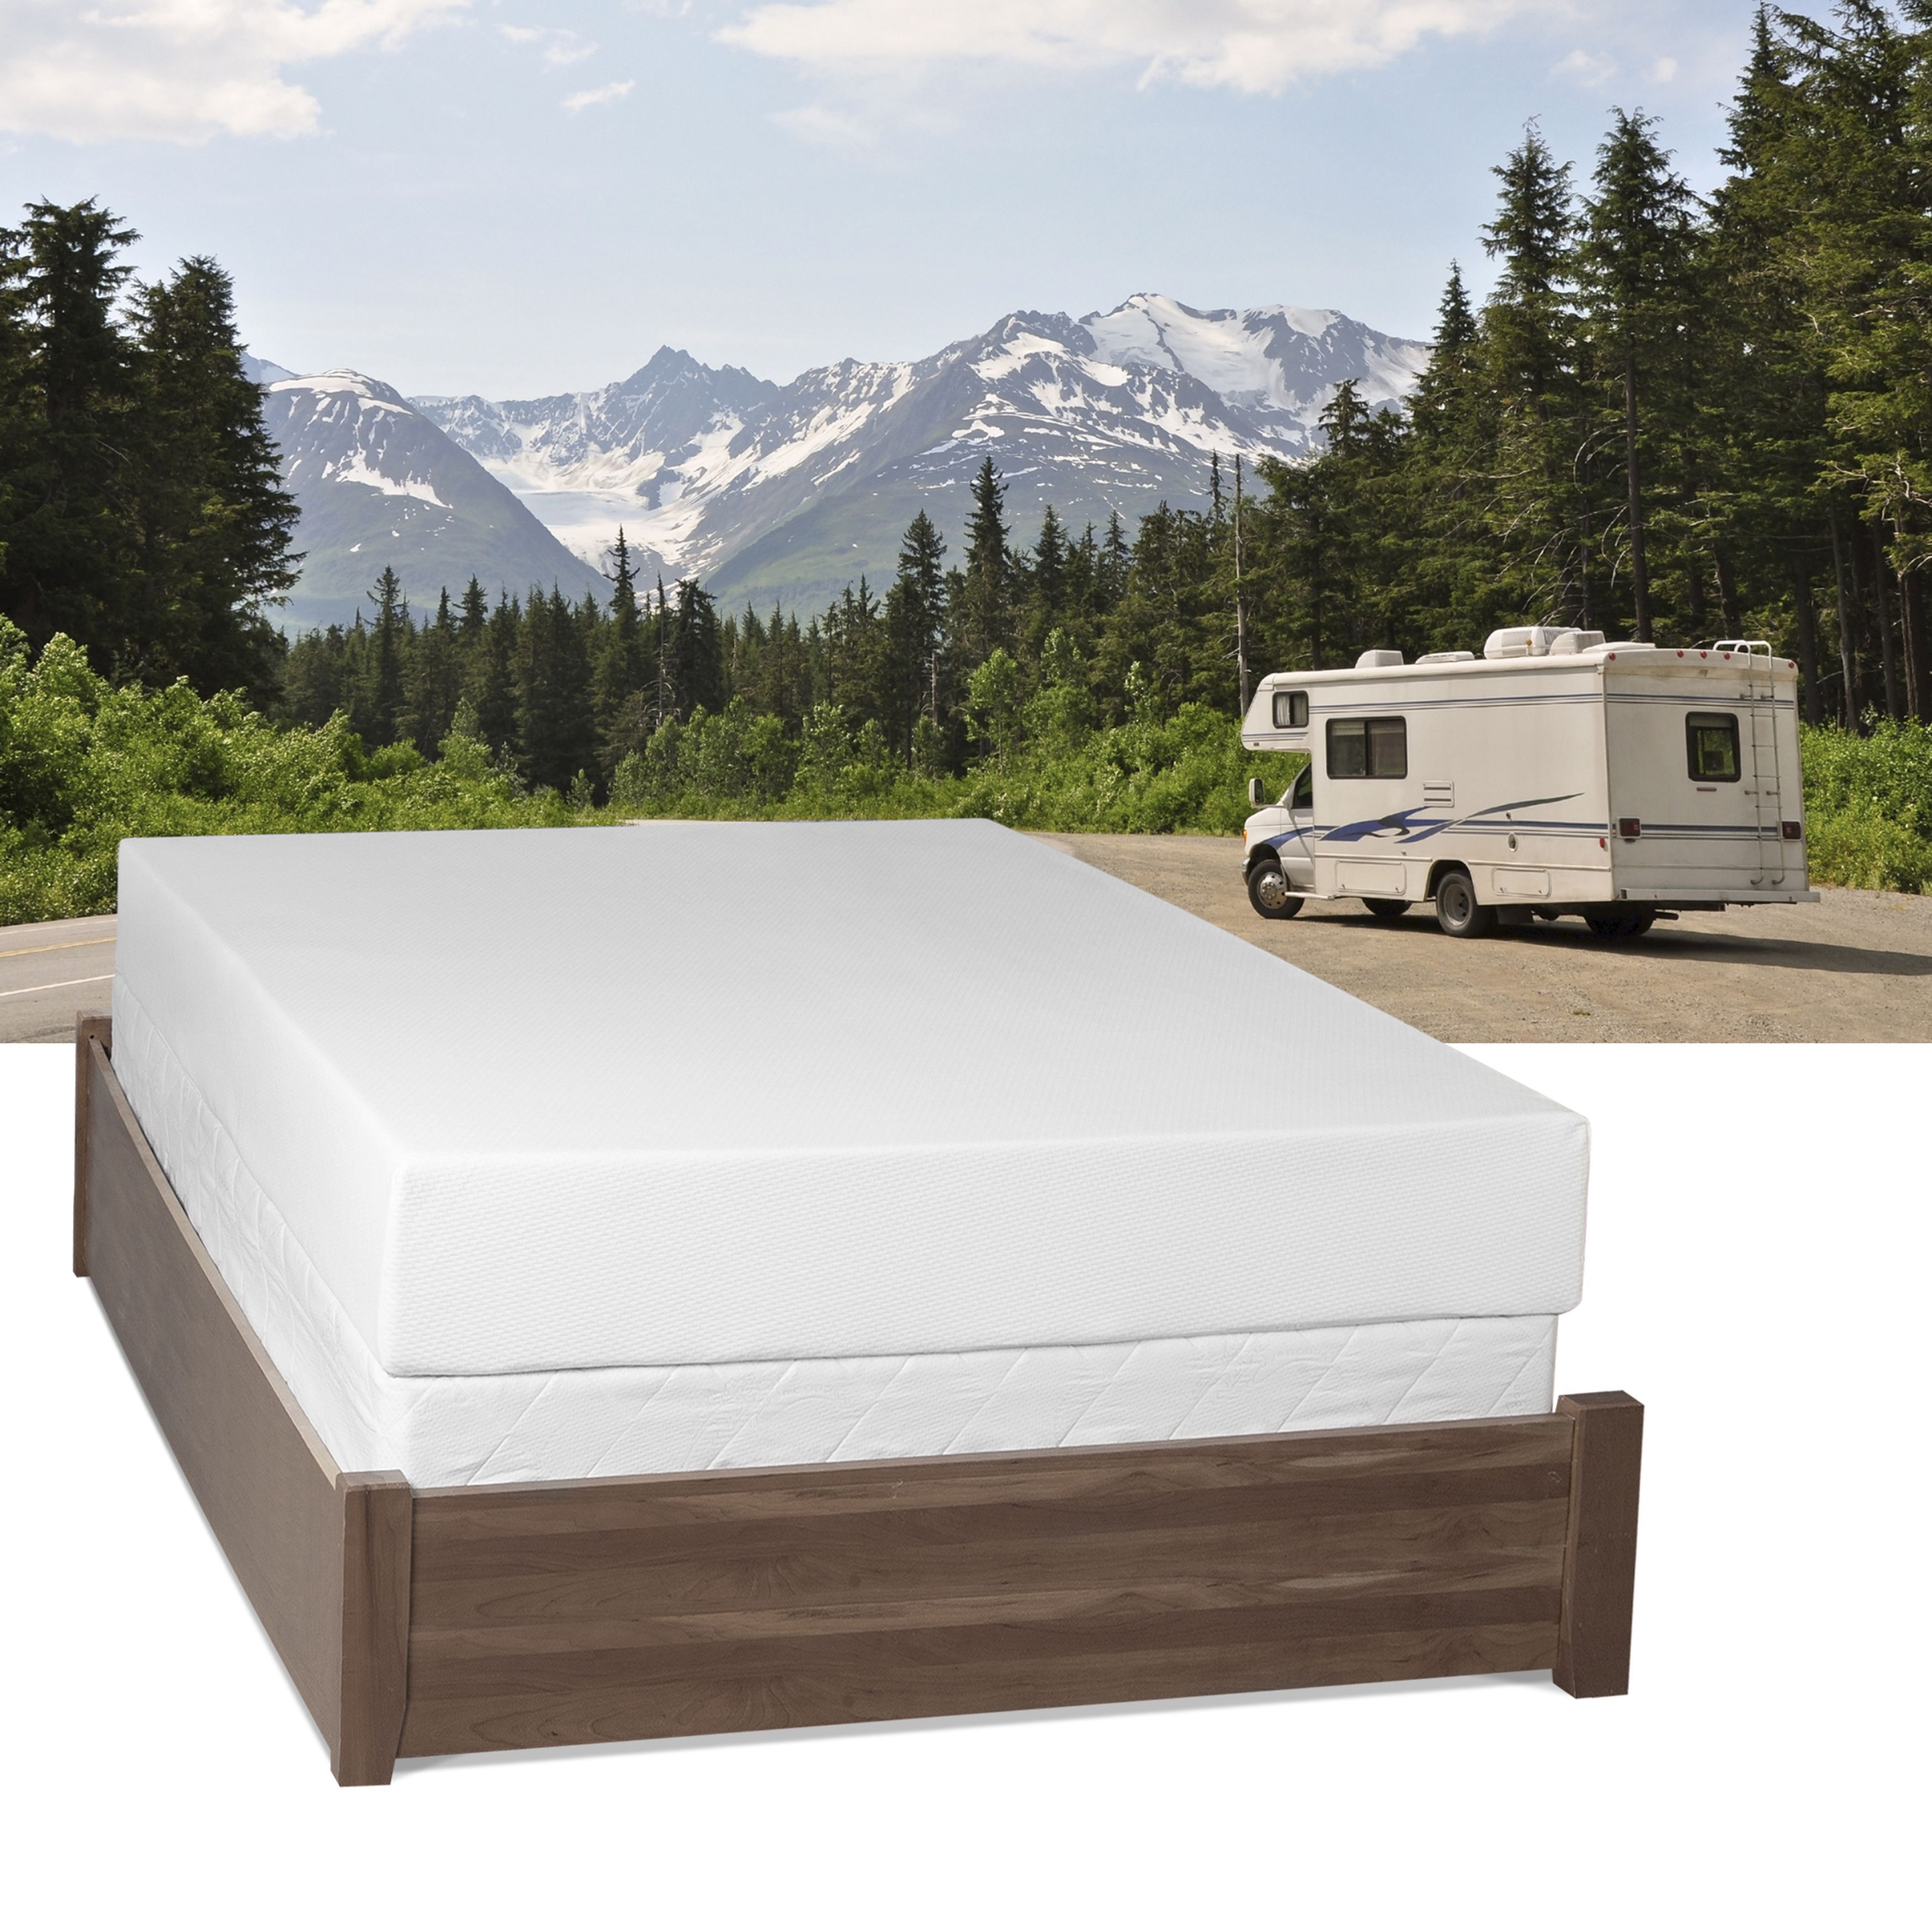 Get the restful sleep you need to be able to function on all cylinders with this comfortable memory foam RV mattress. The mattress is specifically designed by NASA to give your body the perfect support needed for optimal spinal alignment.